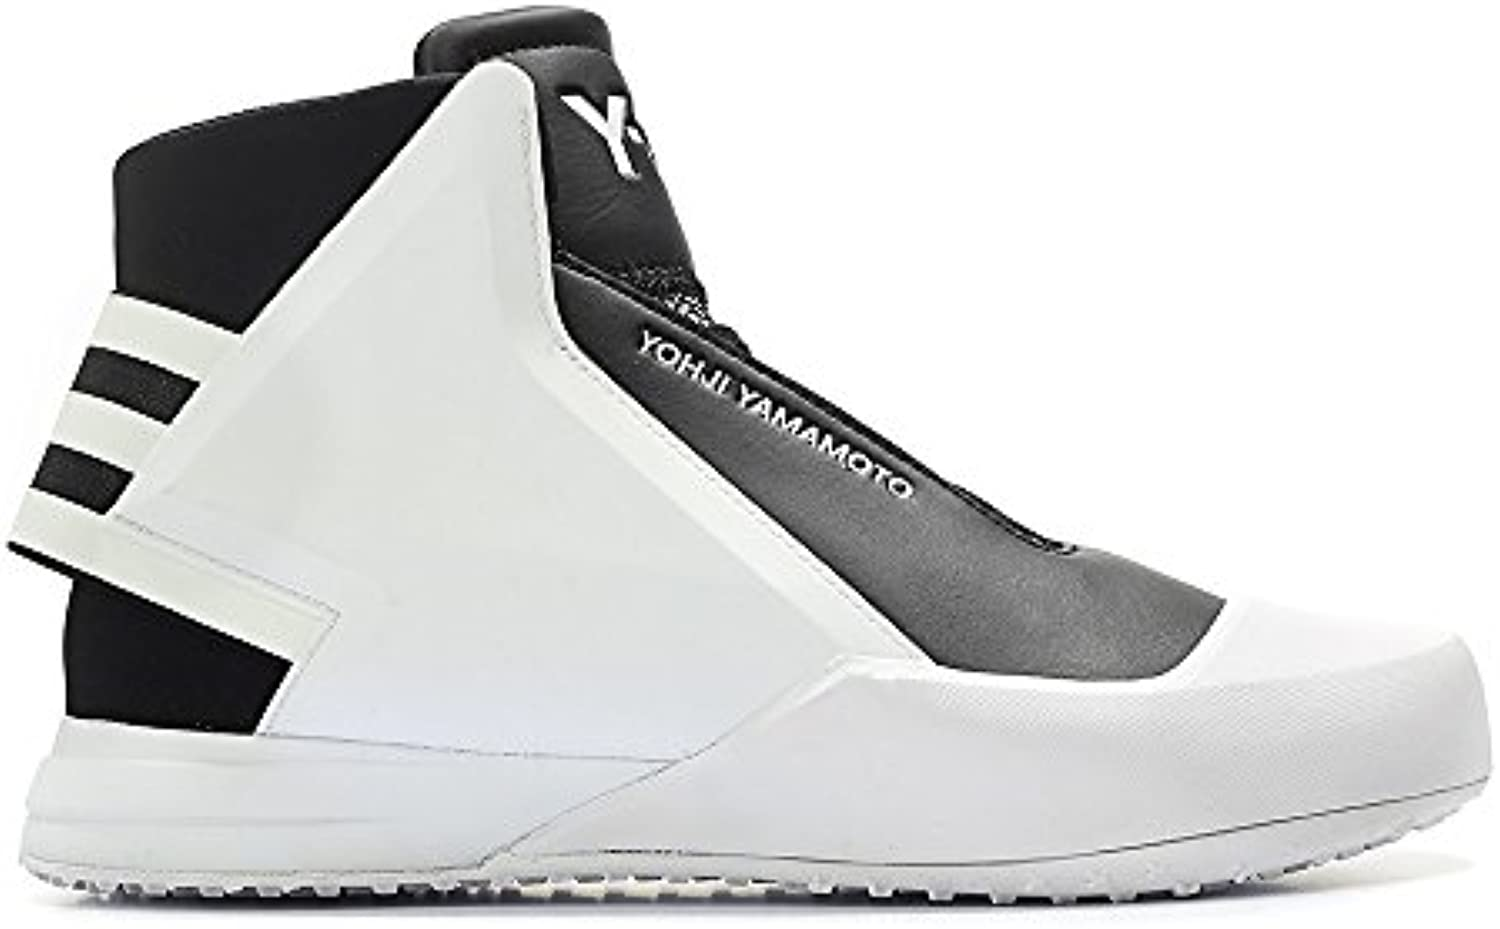 basket adidas y 3 technicien noir core hommes hommes hommes noirs chaussures blanches | Apparence Attrayante